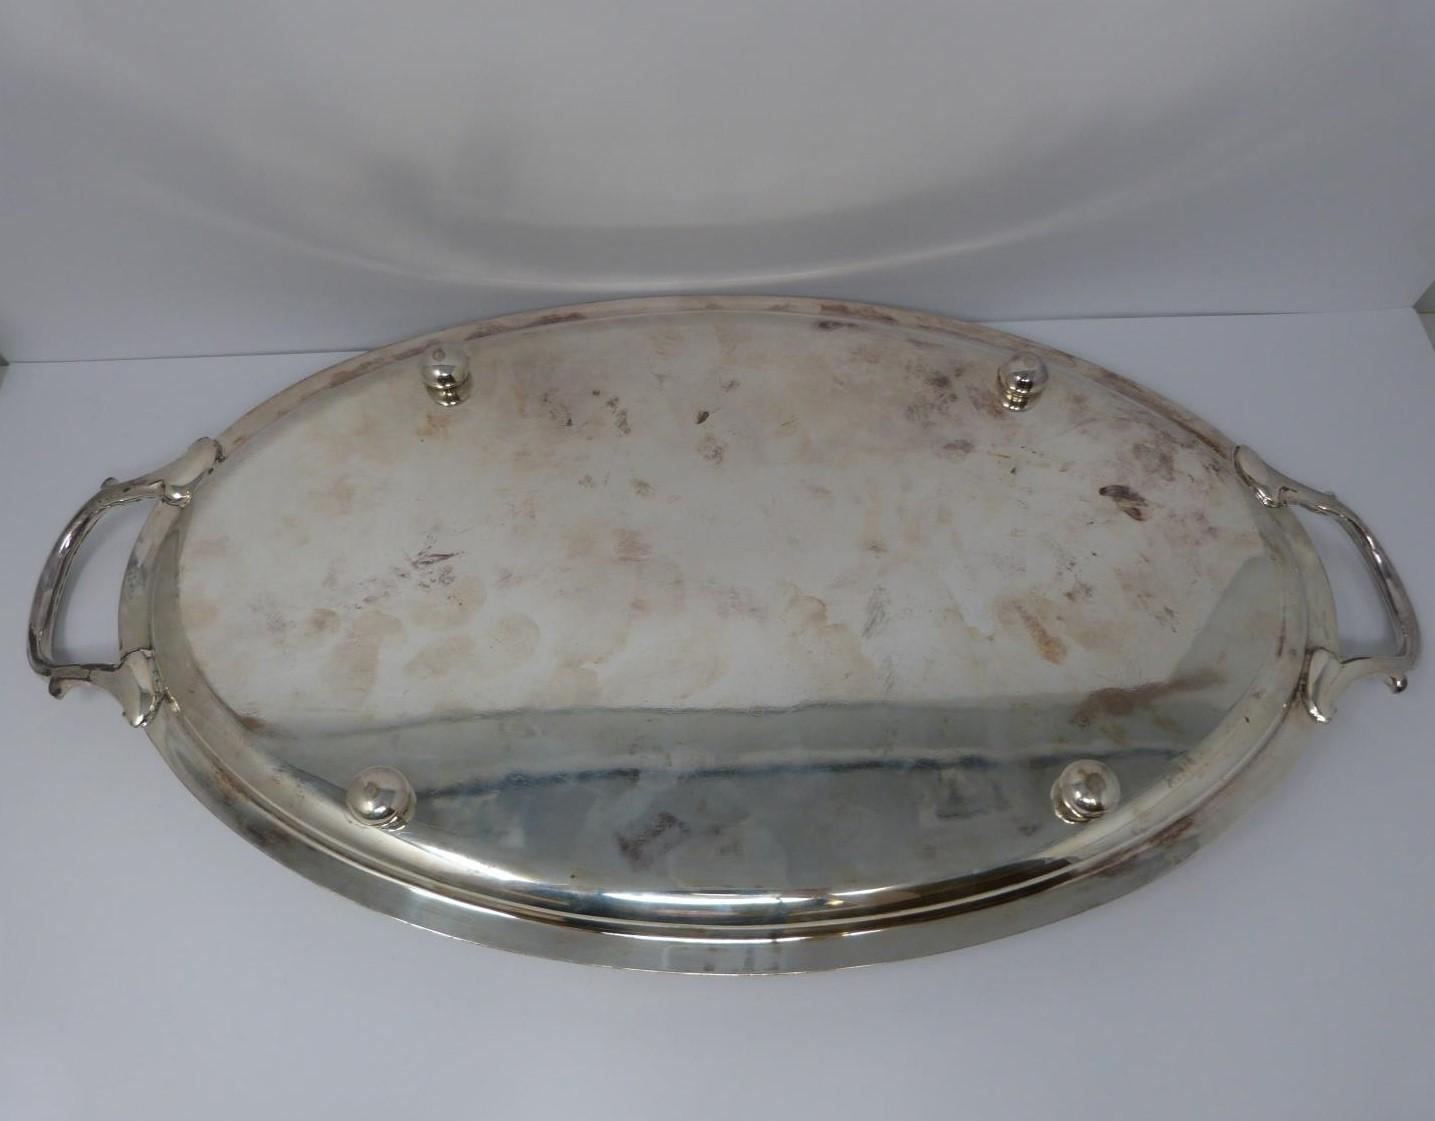 A large silver oval tray, monogrammed with H, round pebble feet, foliate design handles, ridged rim, - Image 2 of 5